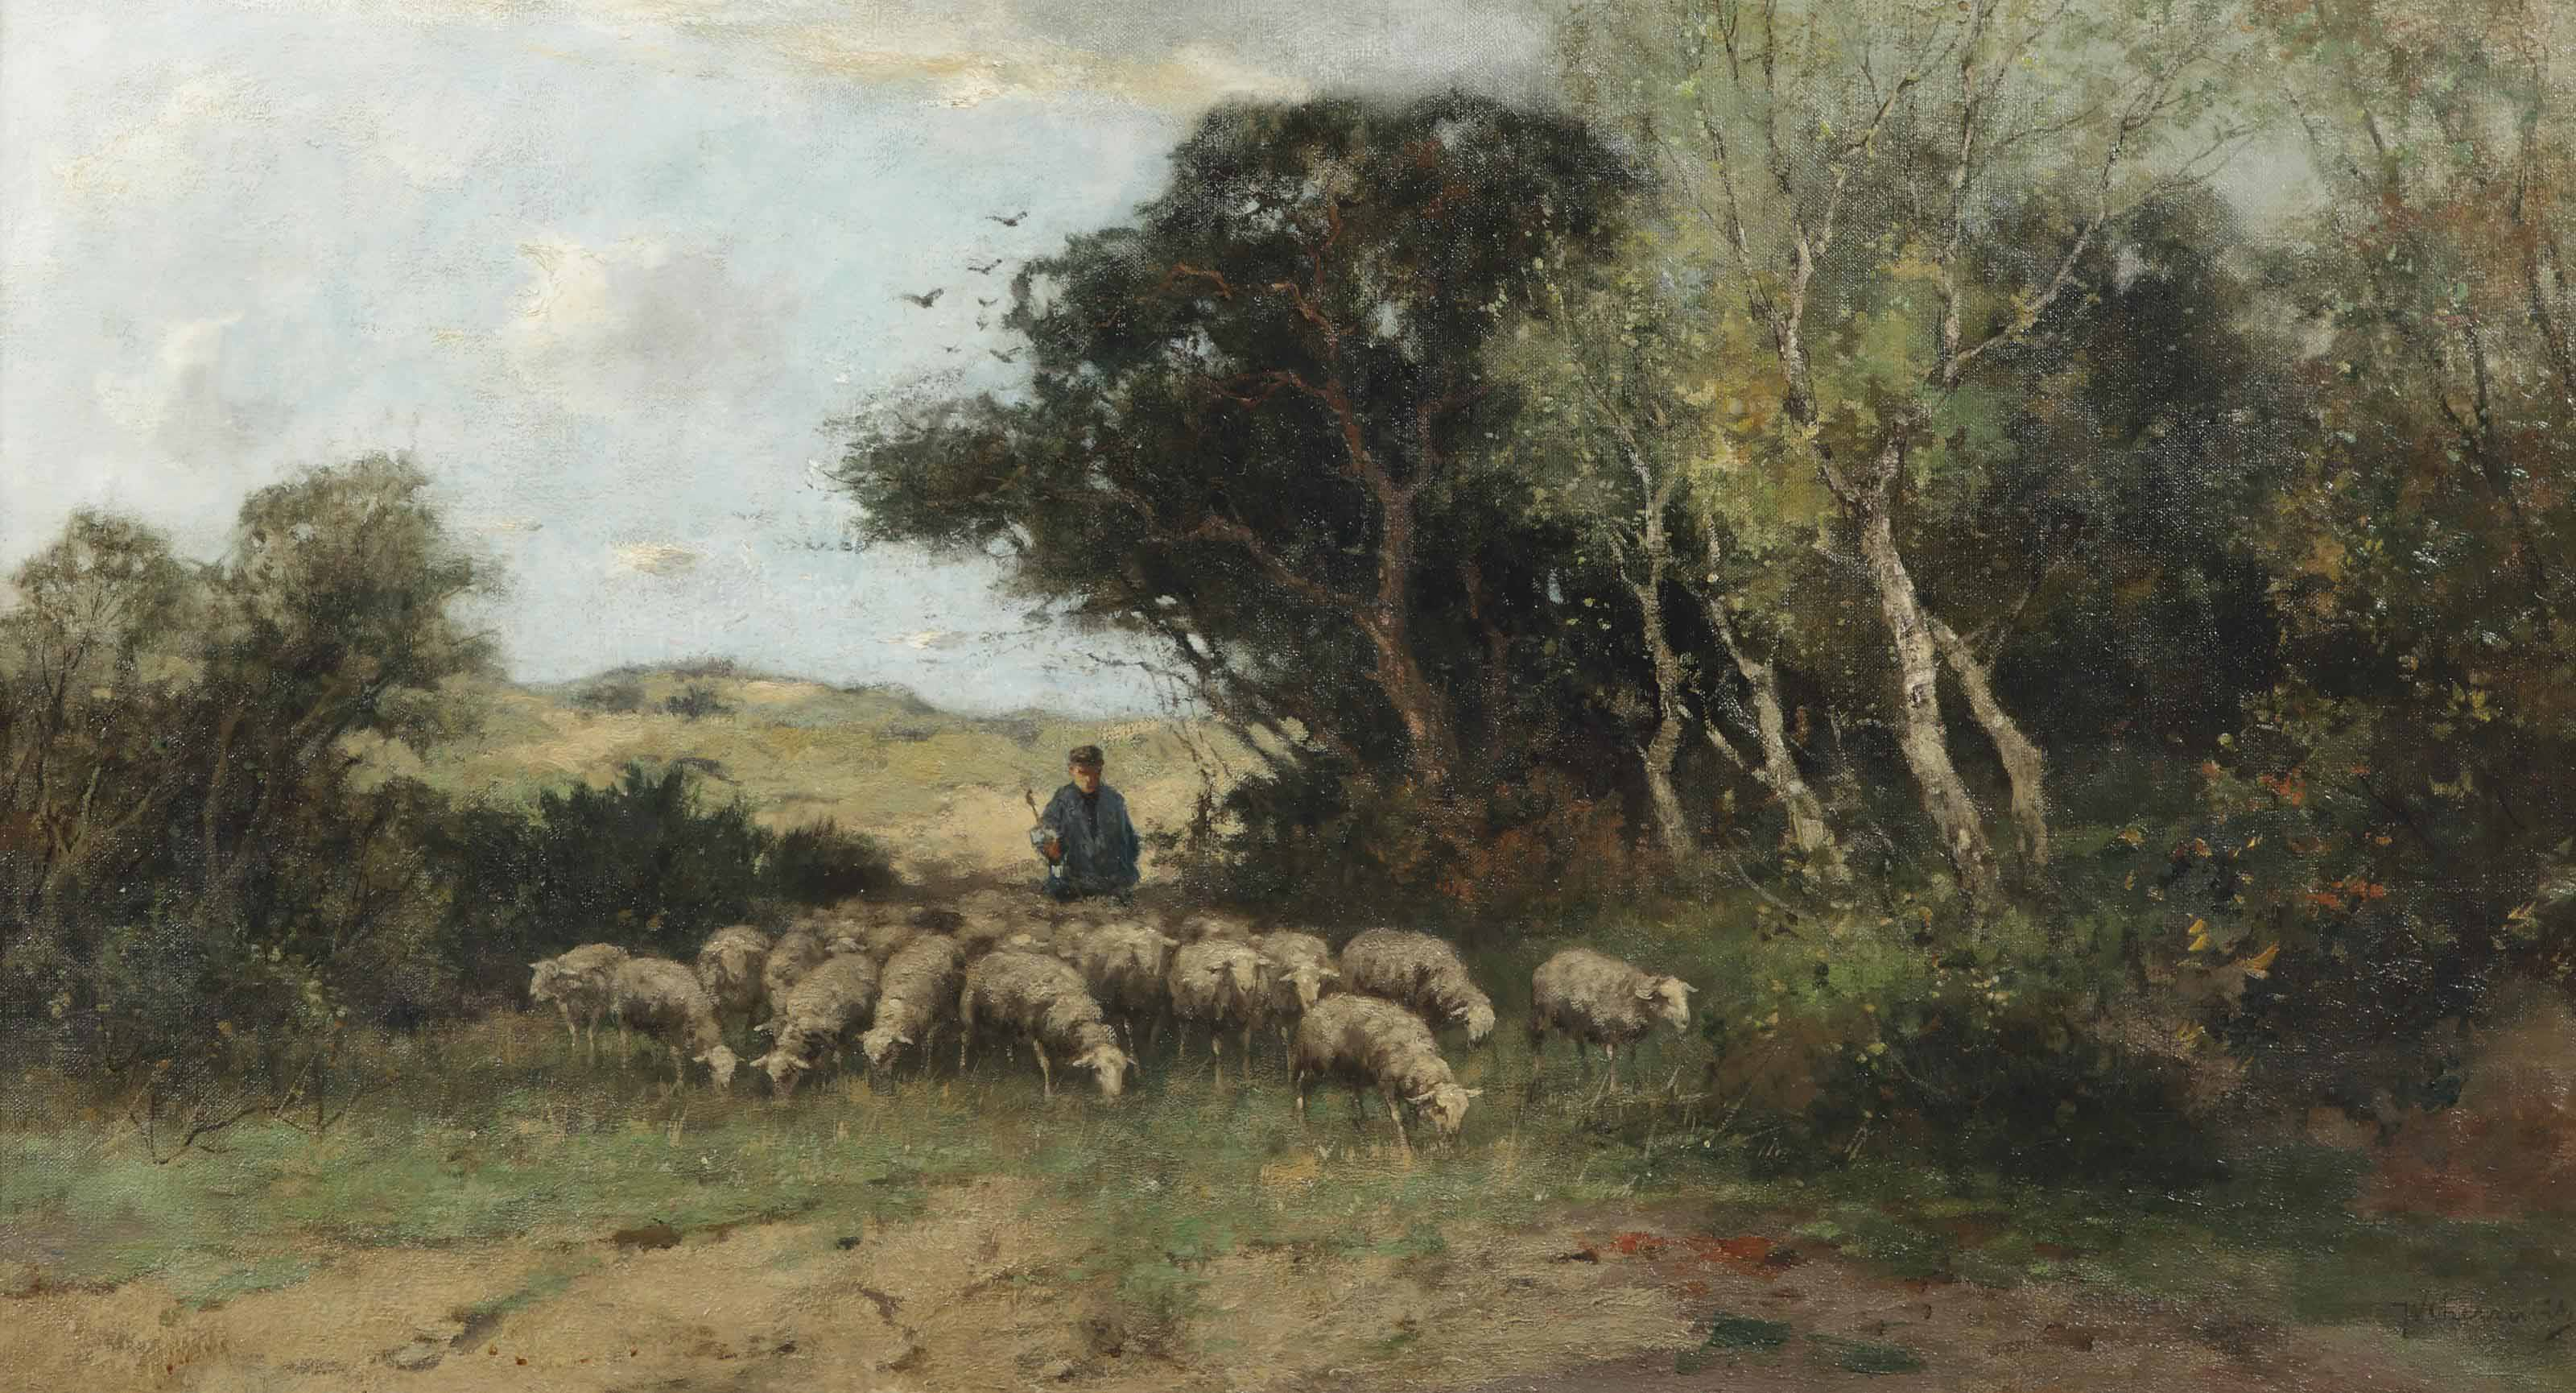 A shepherd and his flock in a wooded landscape